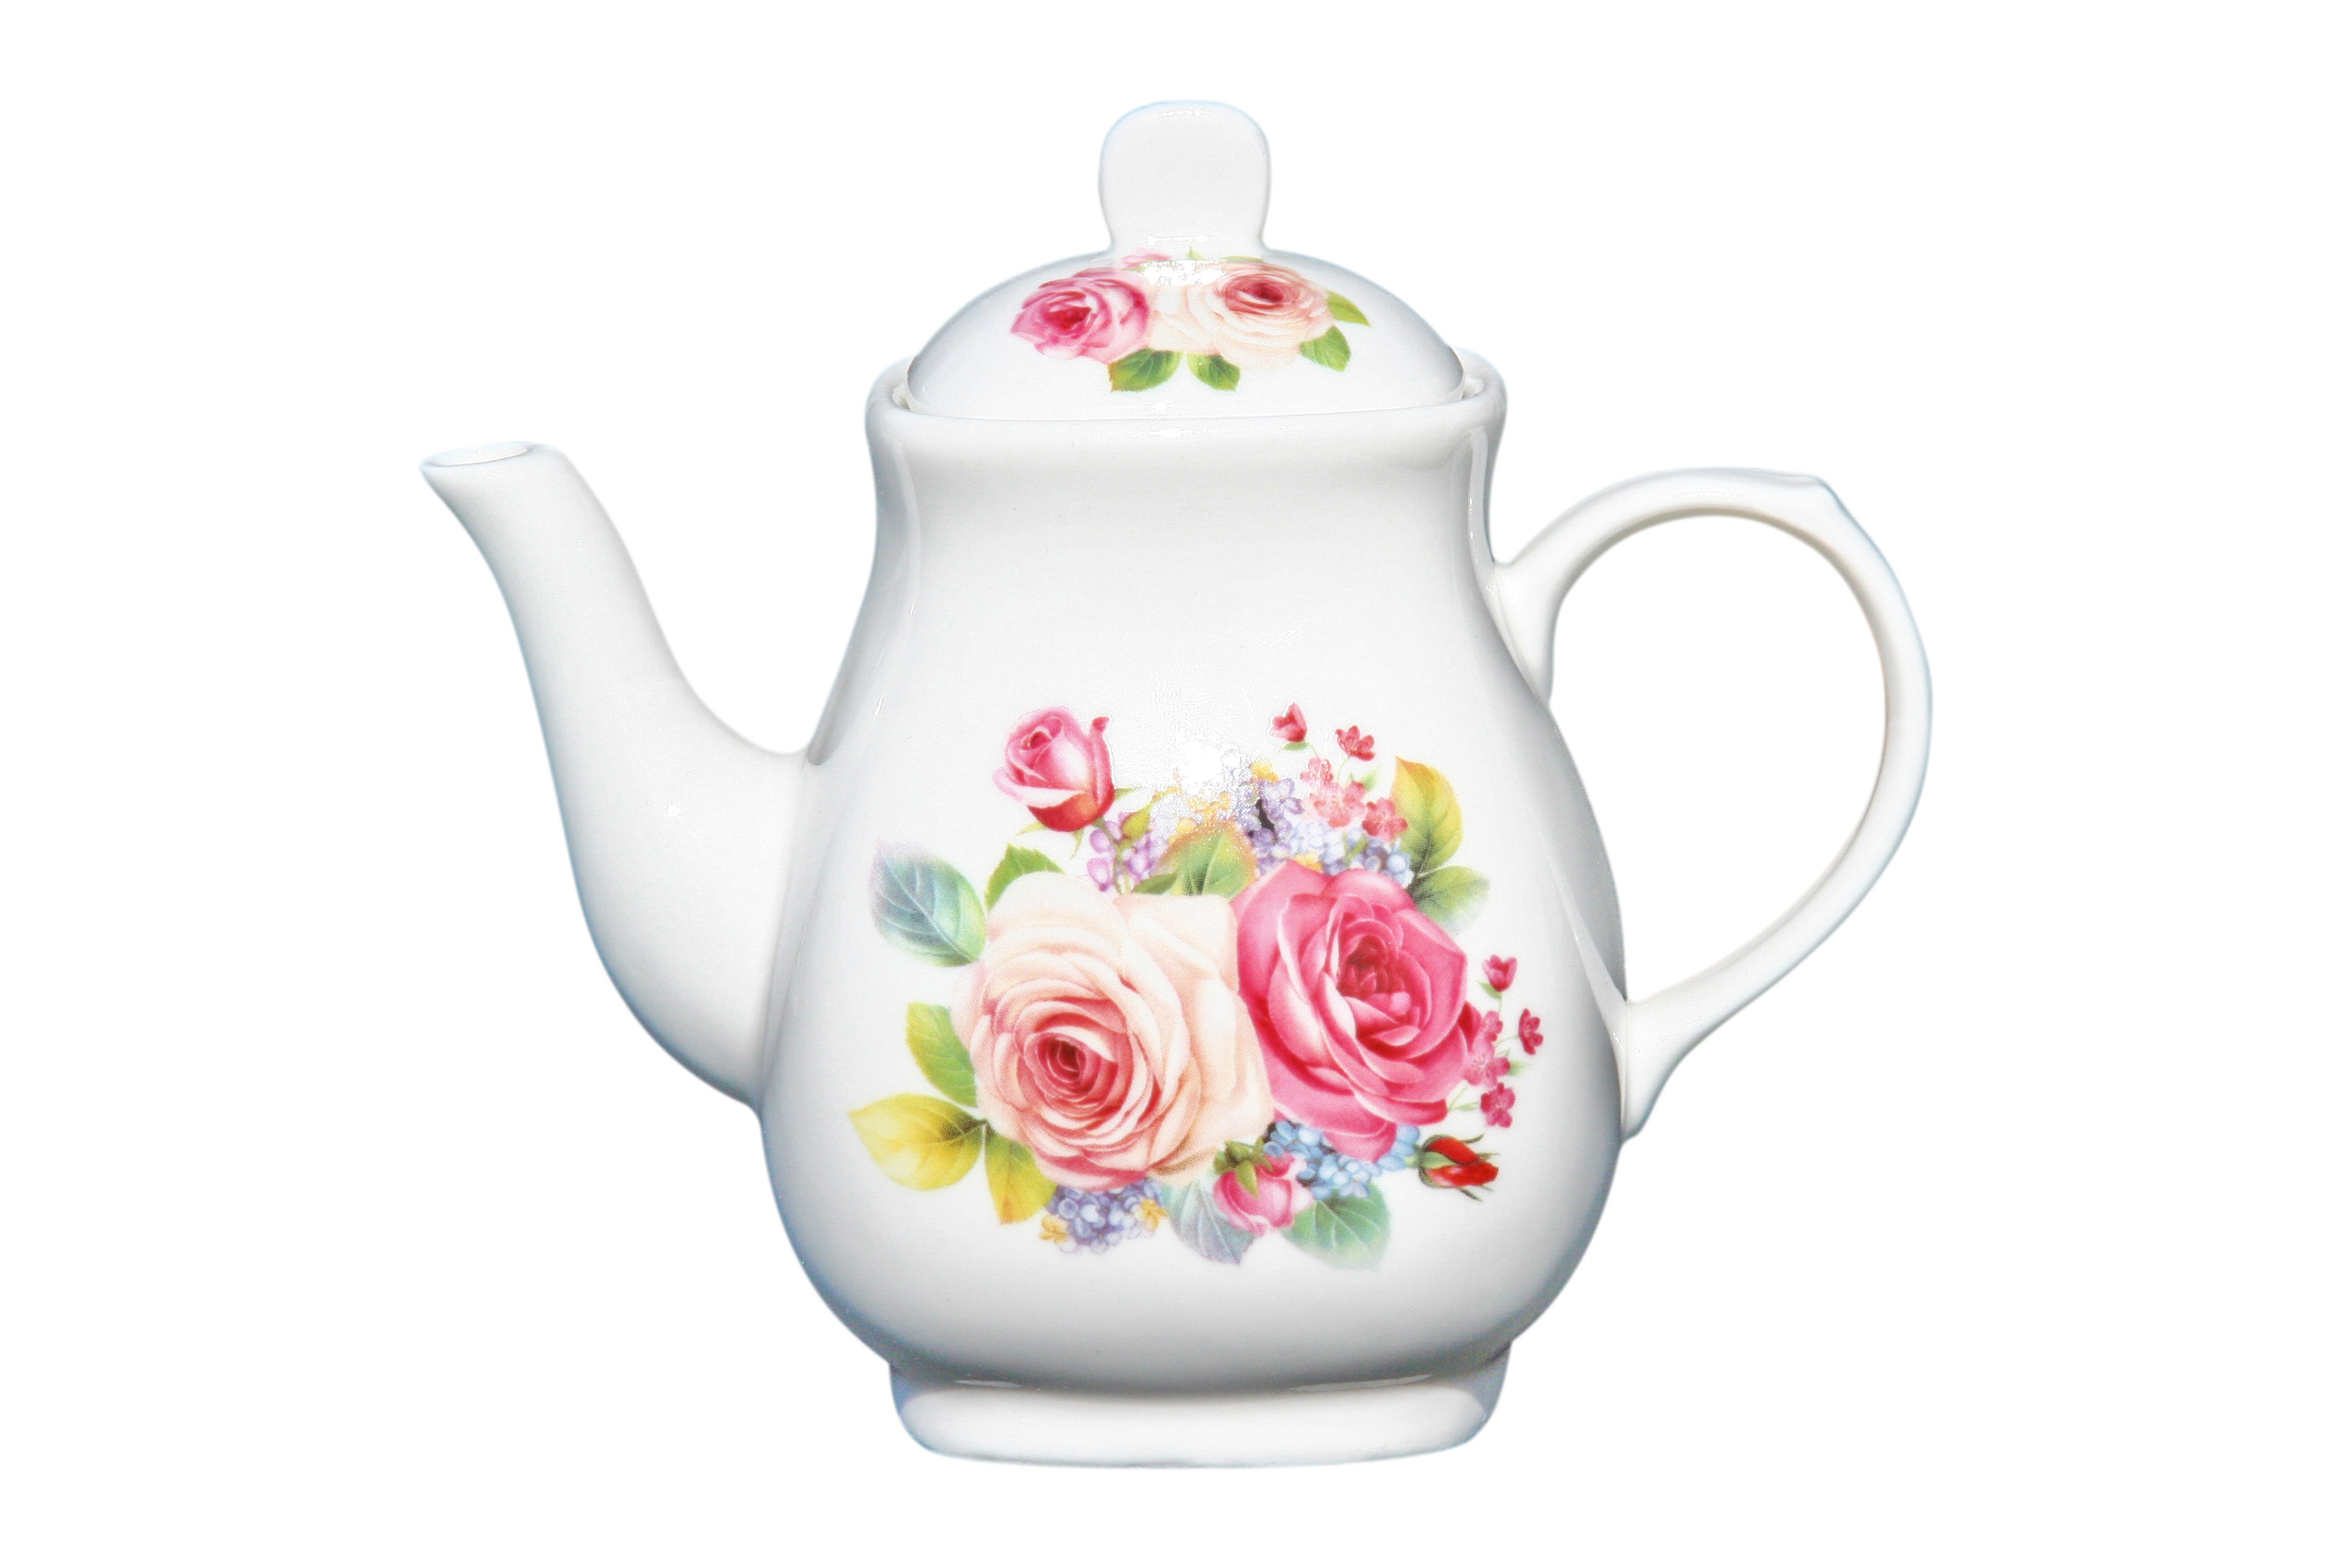 Small Teapot 400mls Engish Arrangement